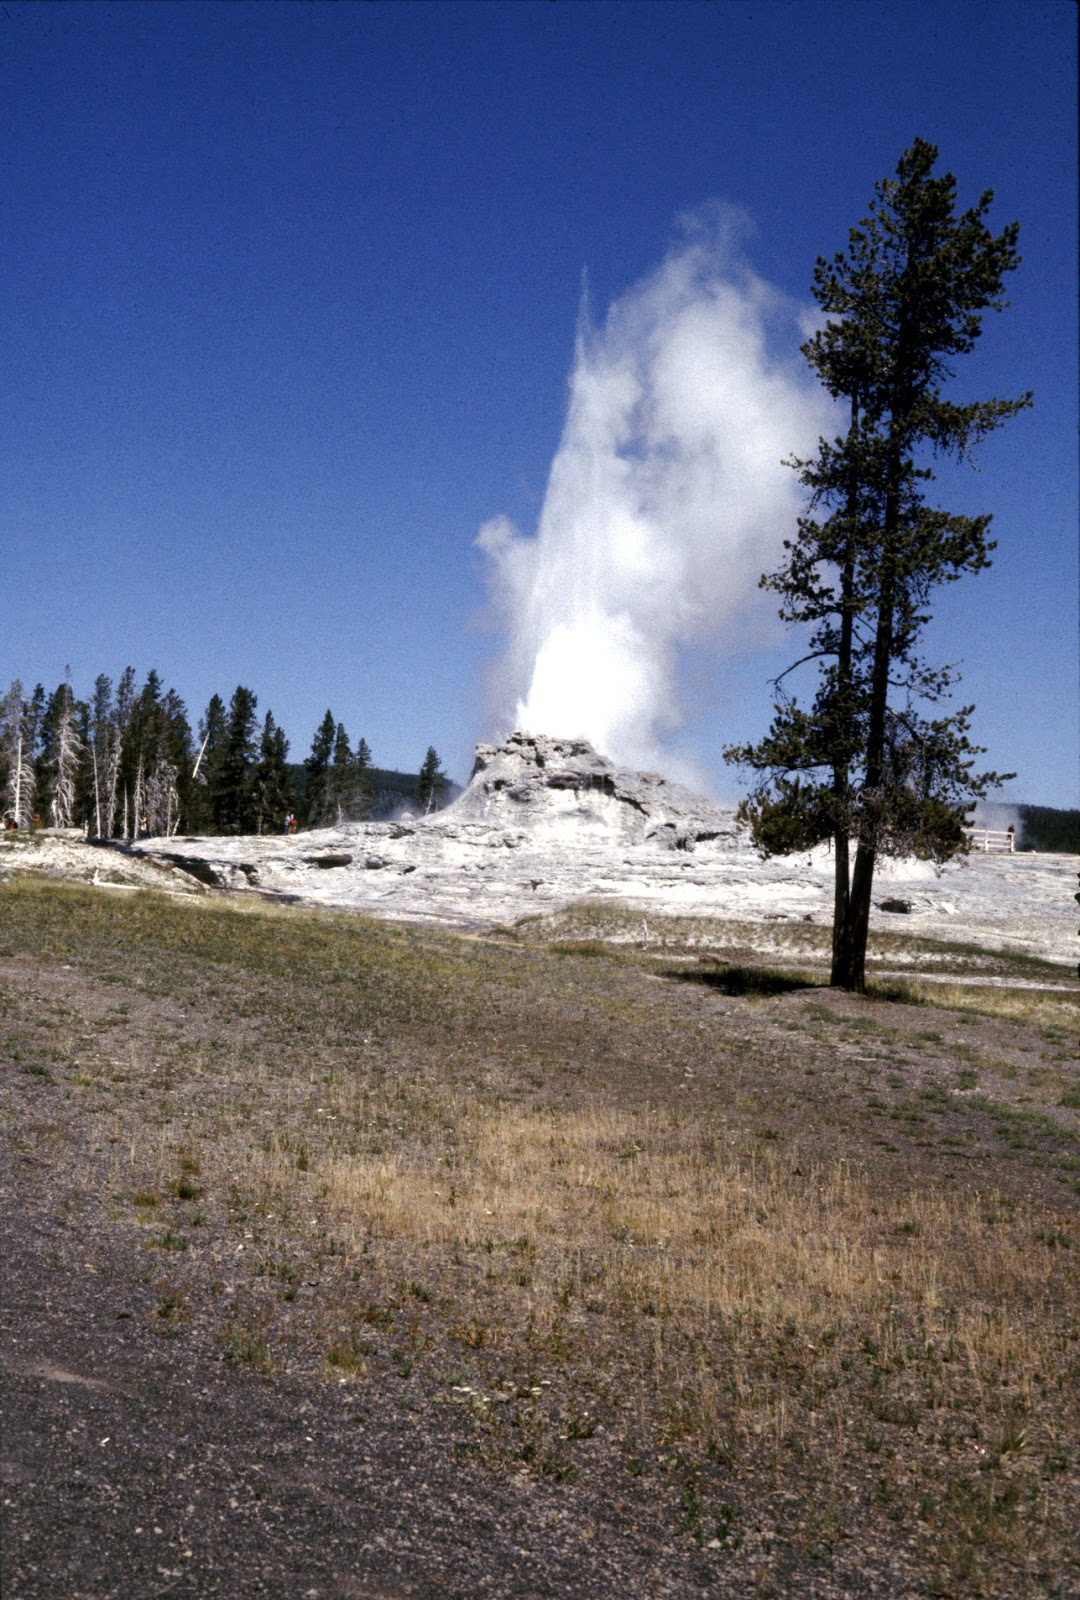 Another cool geyser